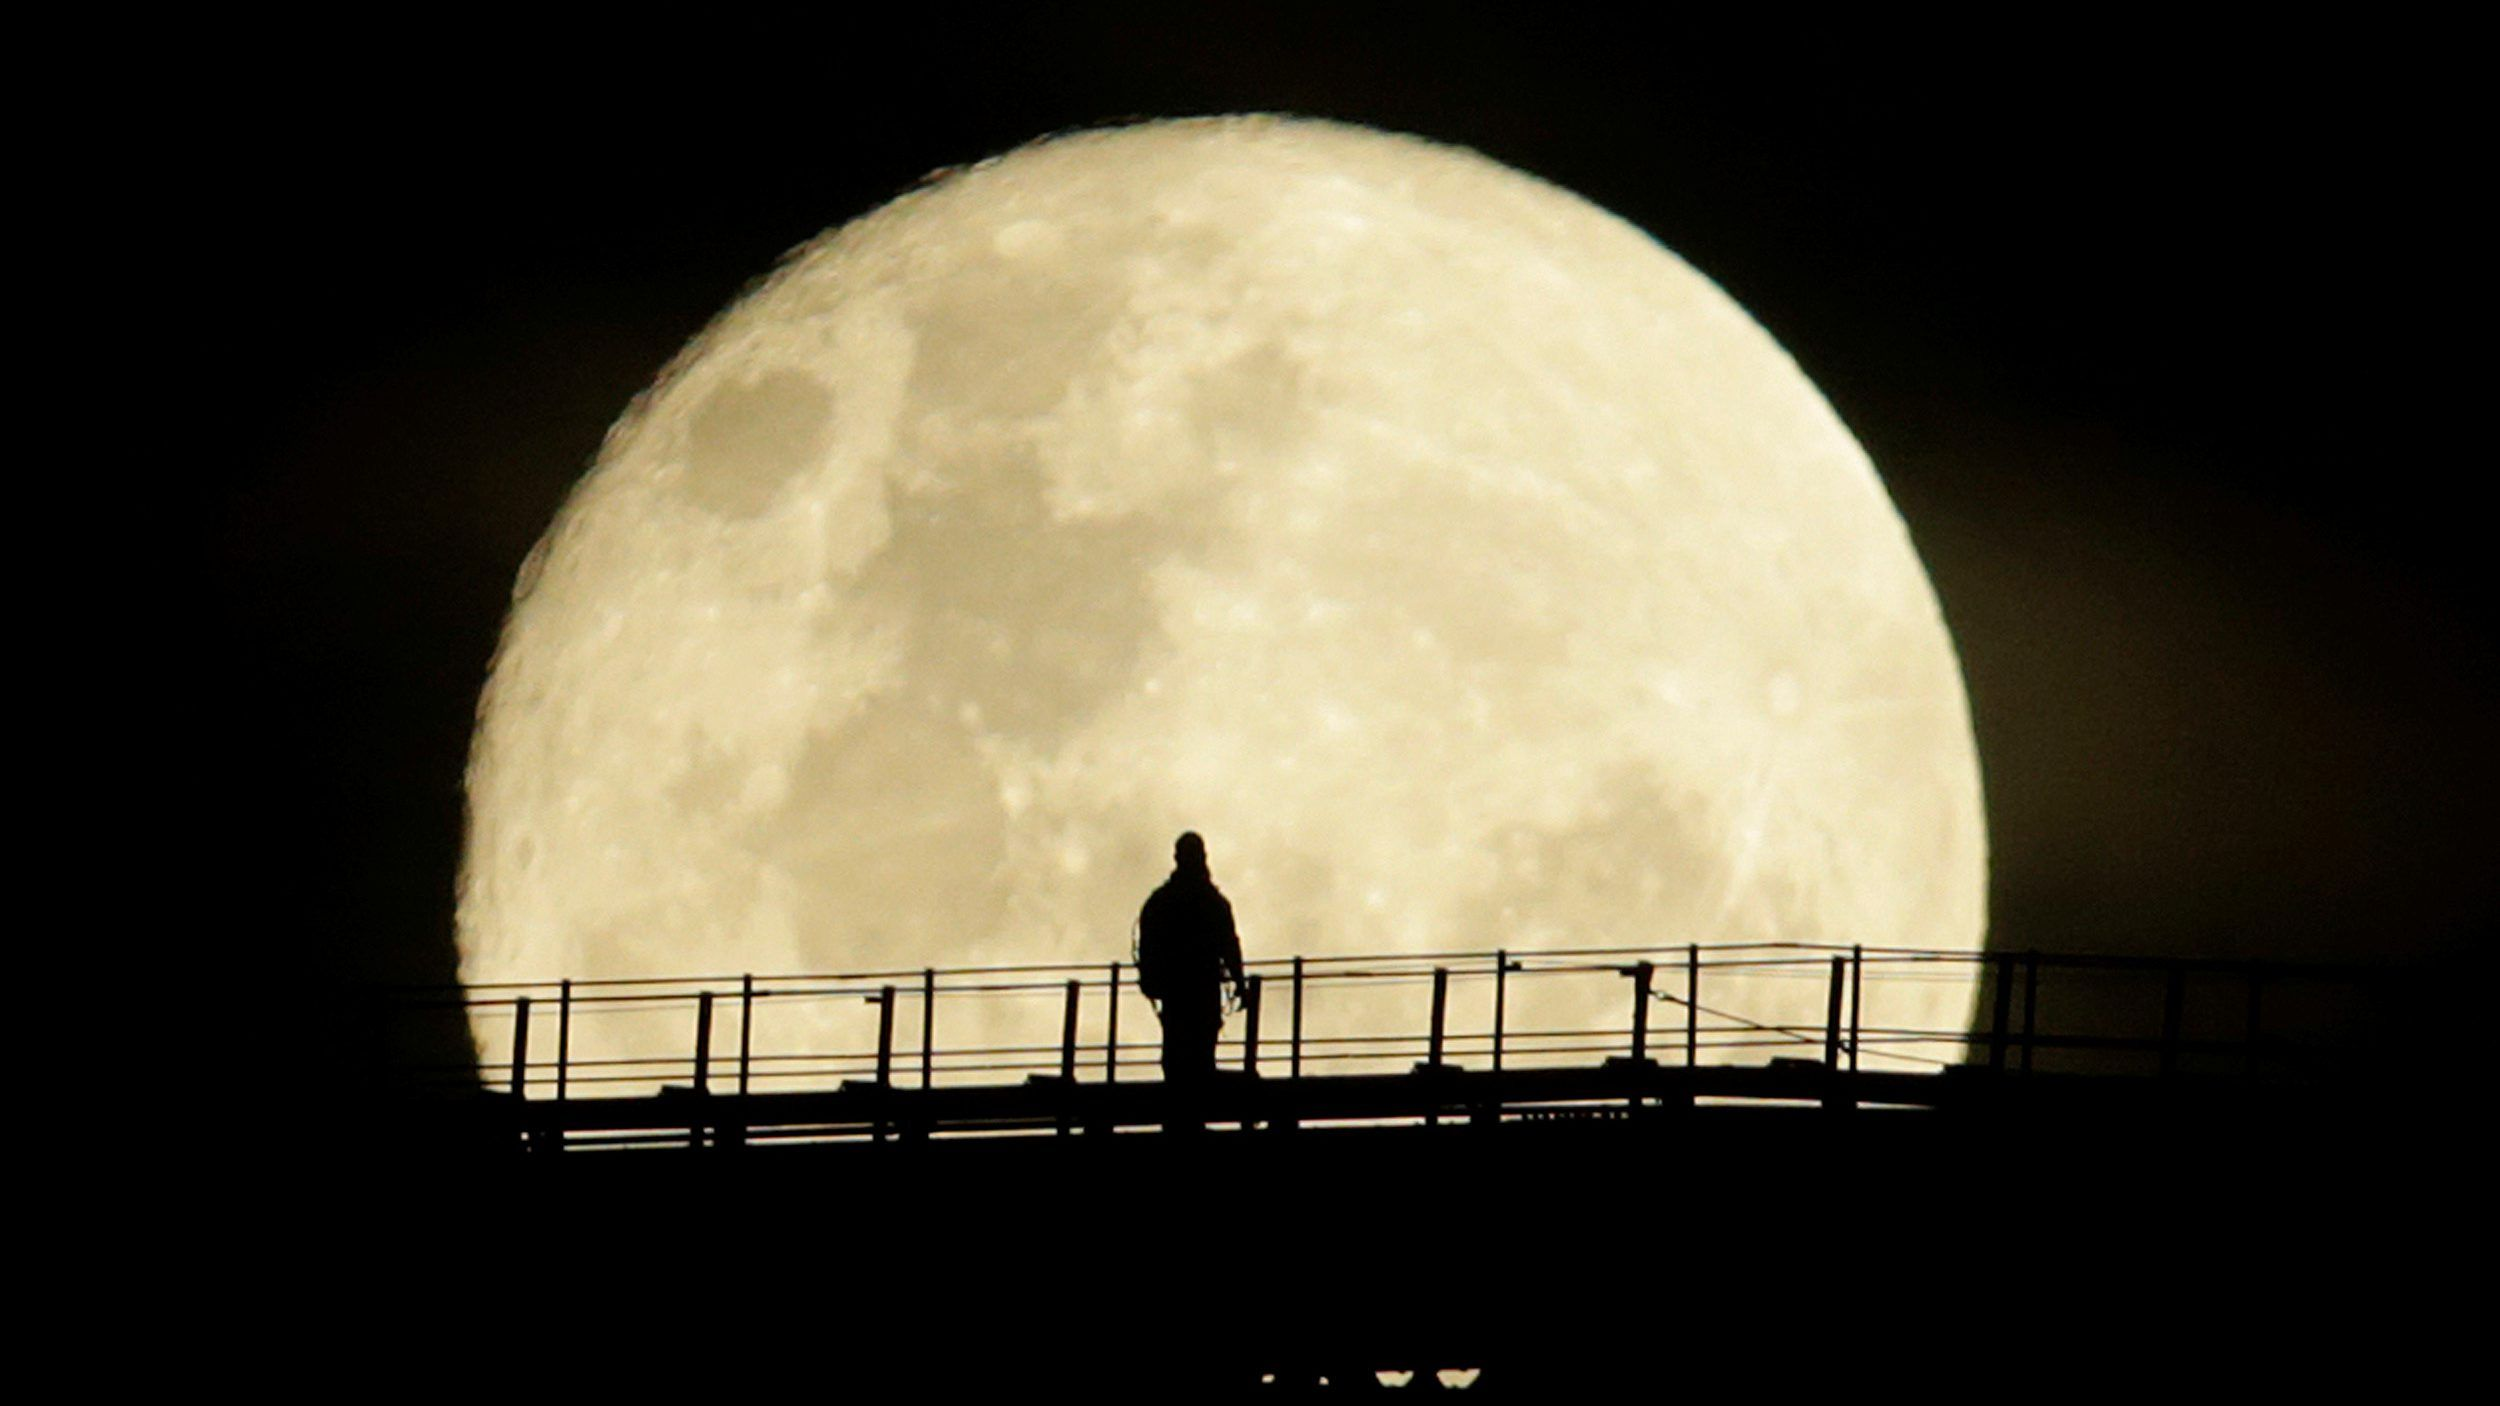 Super moon photo